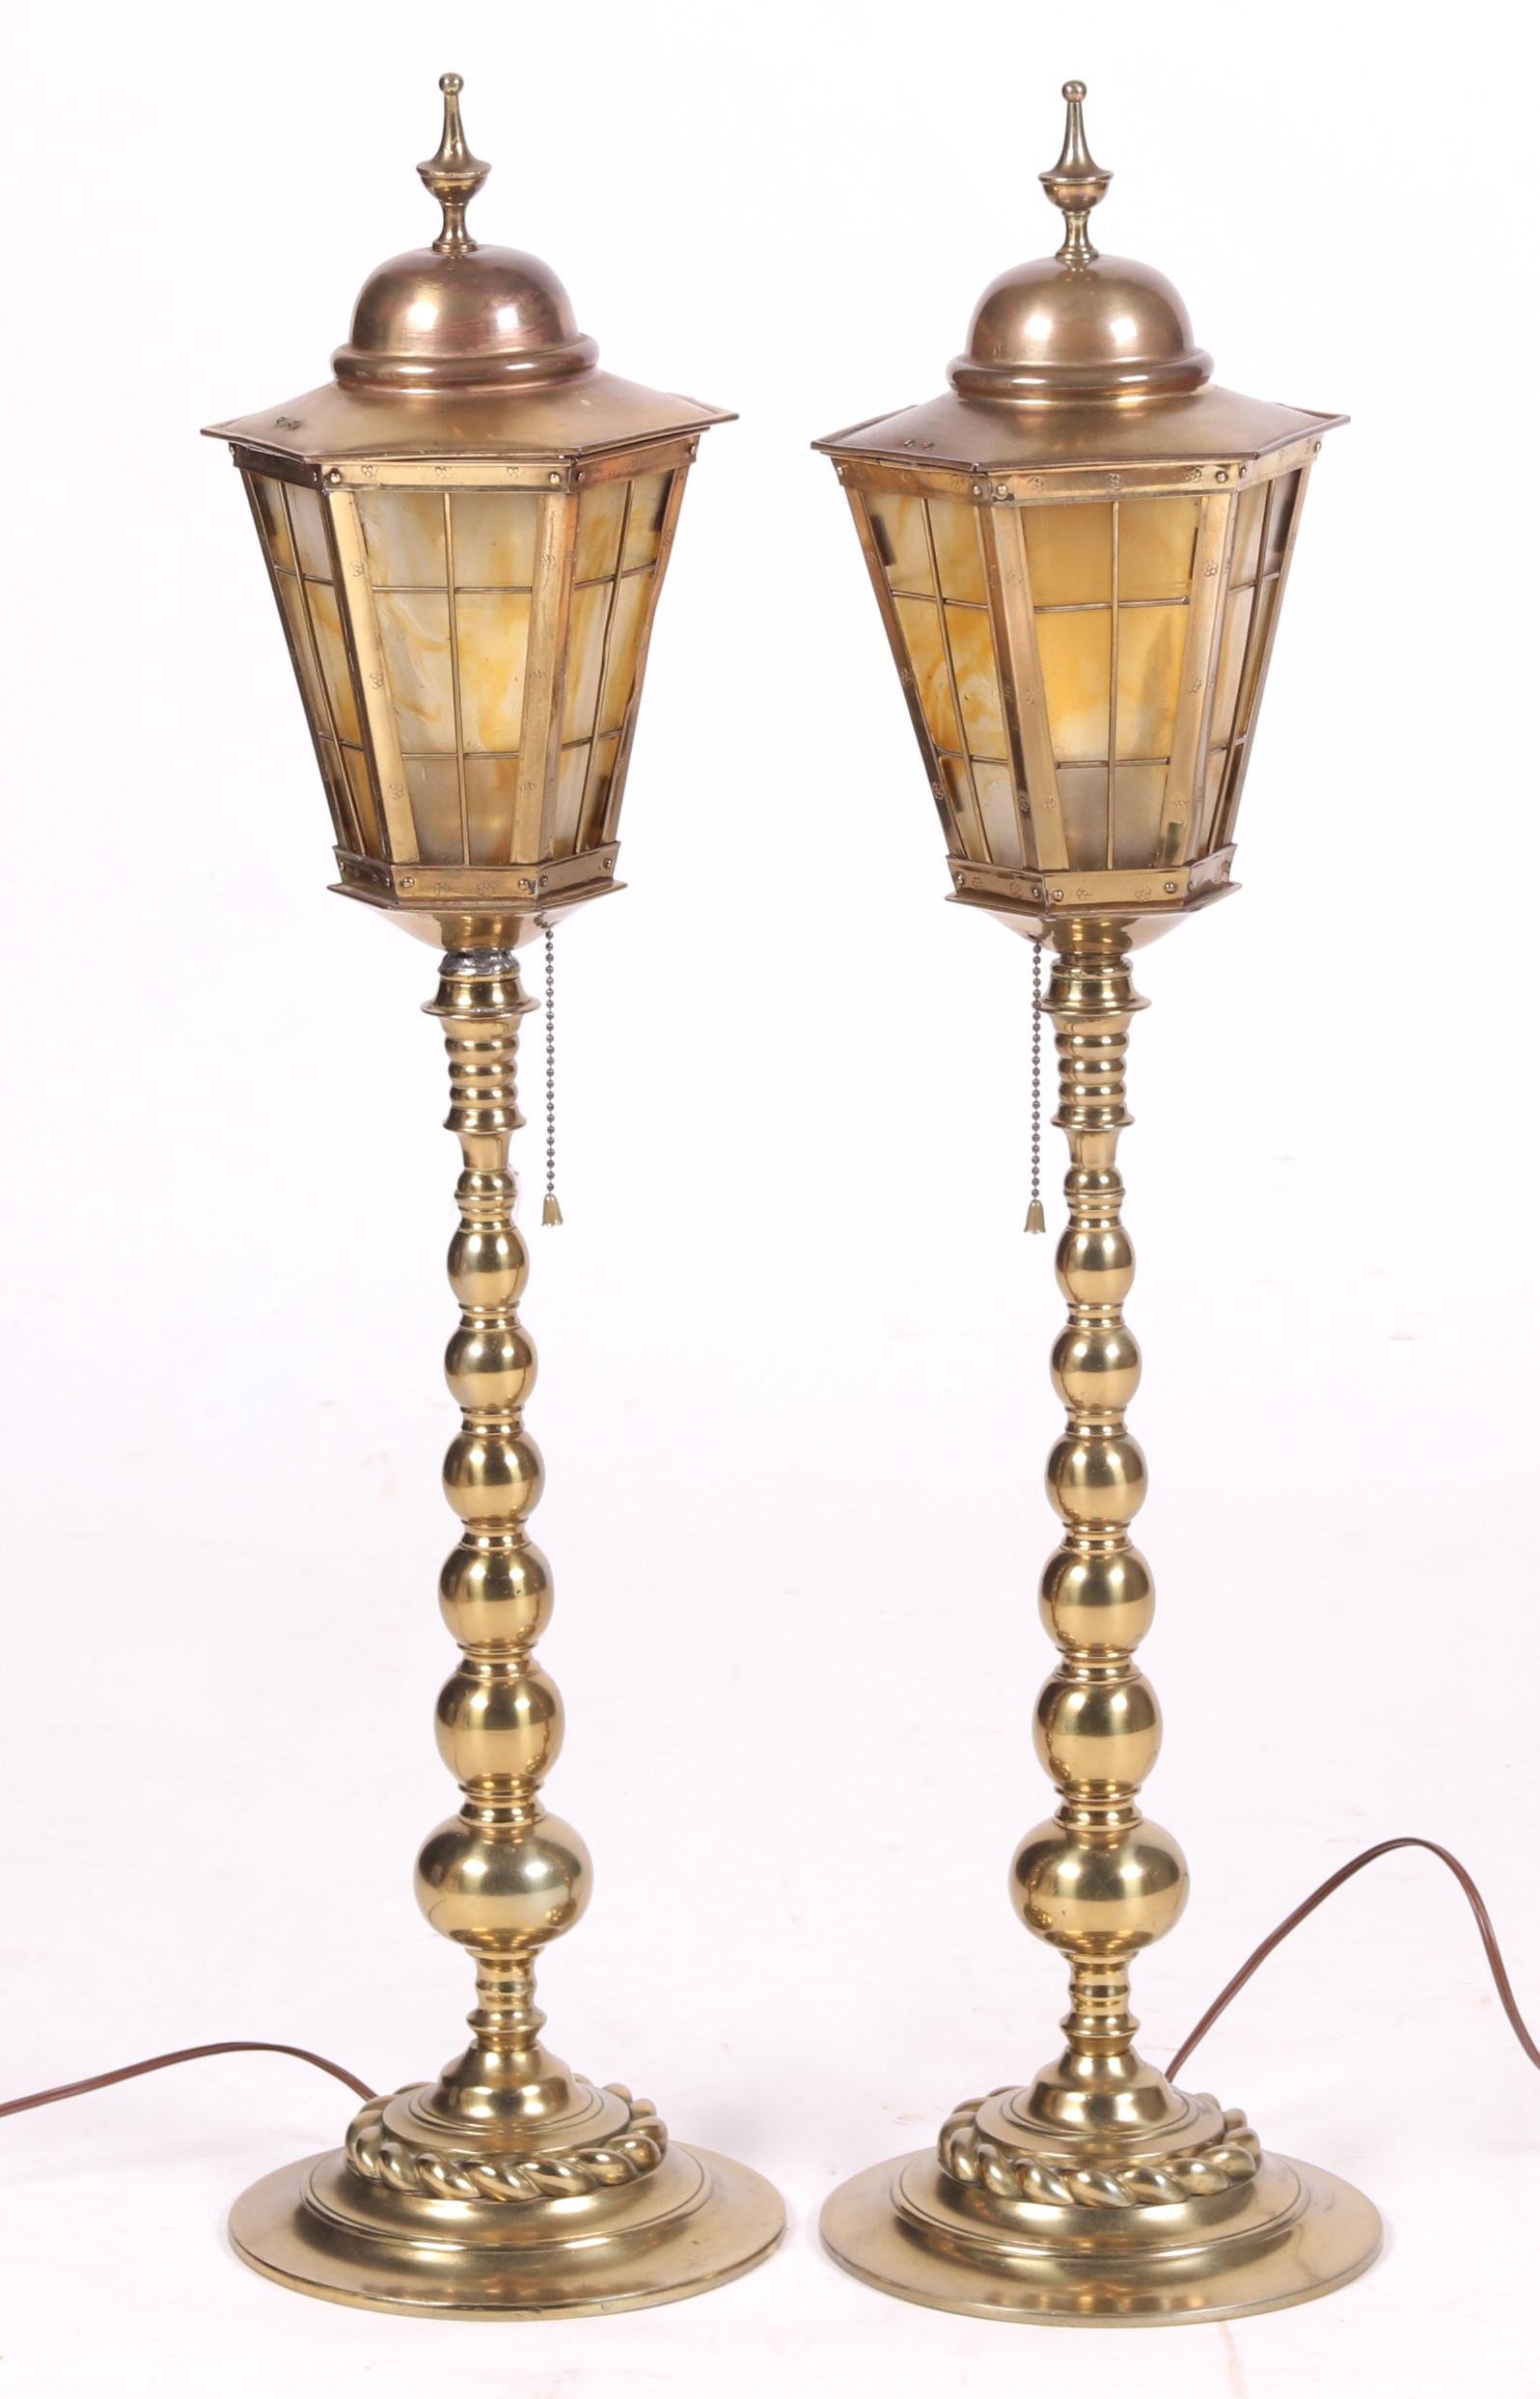 A Pair of Lantern Form Lamps